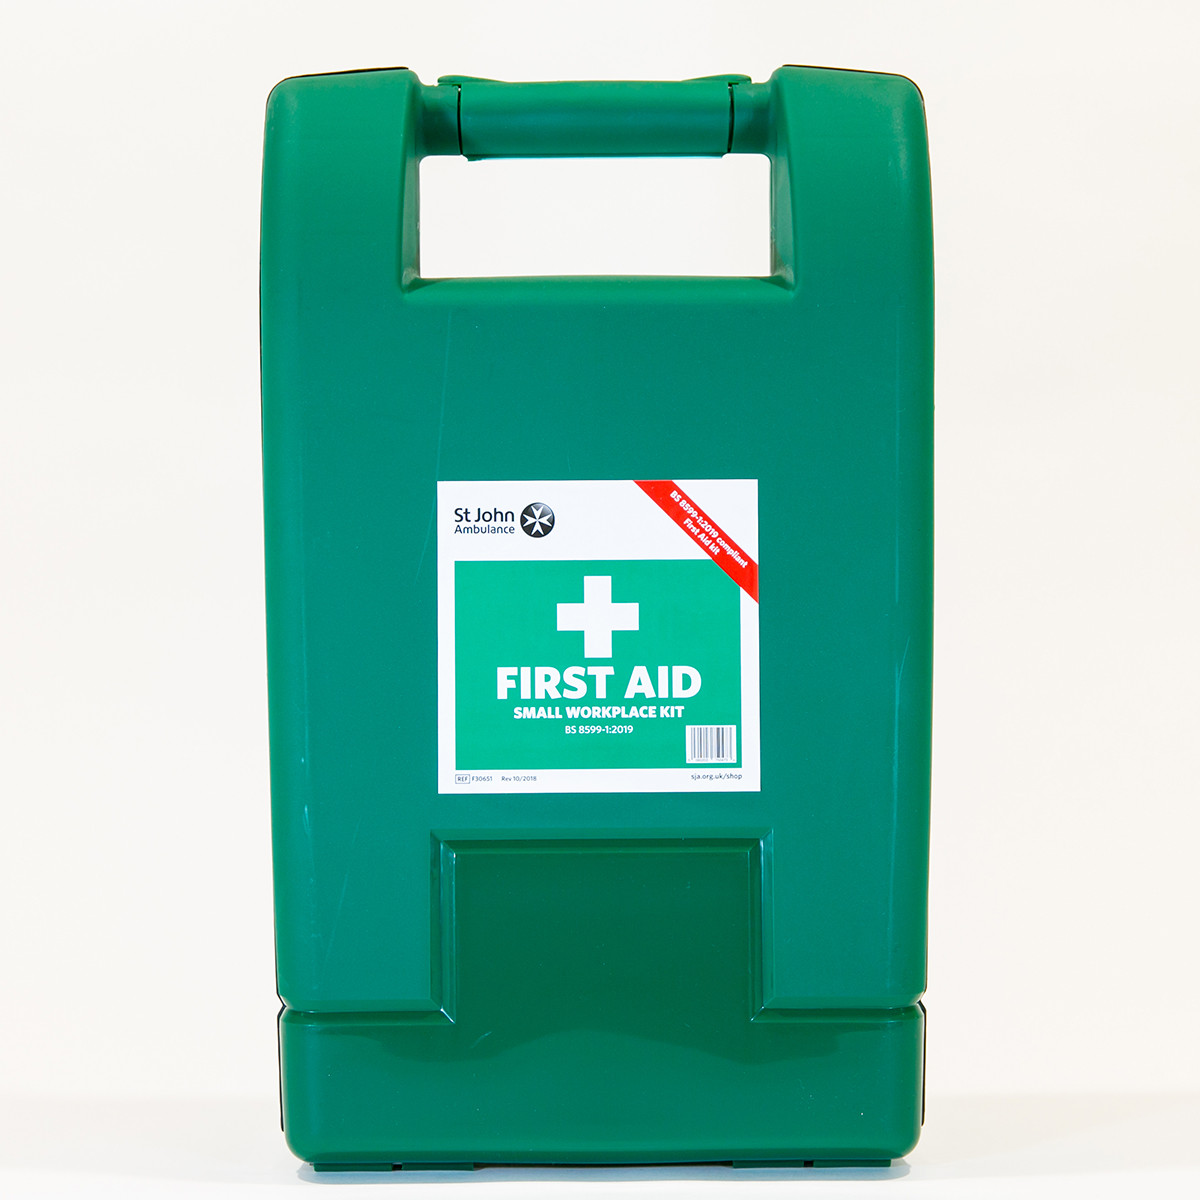 St John Ambulance Small Alpha Workplace First Aid Kit BS 8599-1:2019